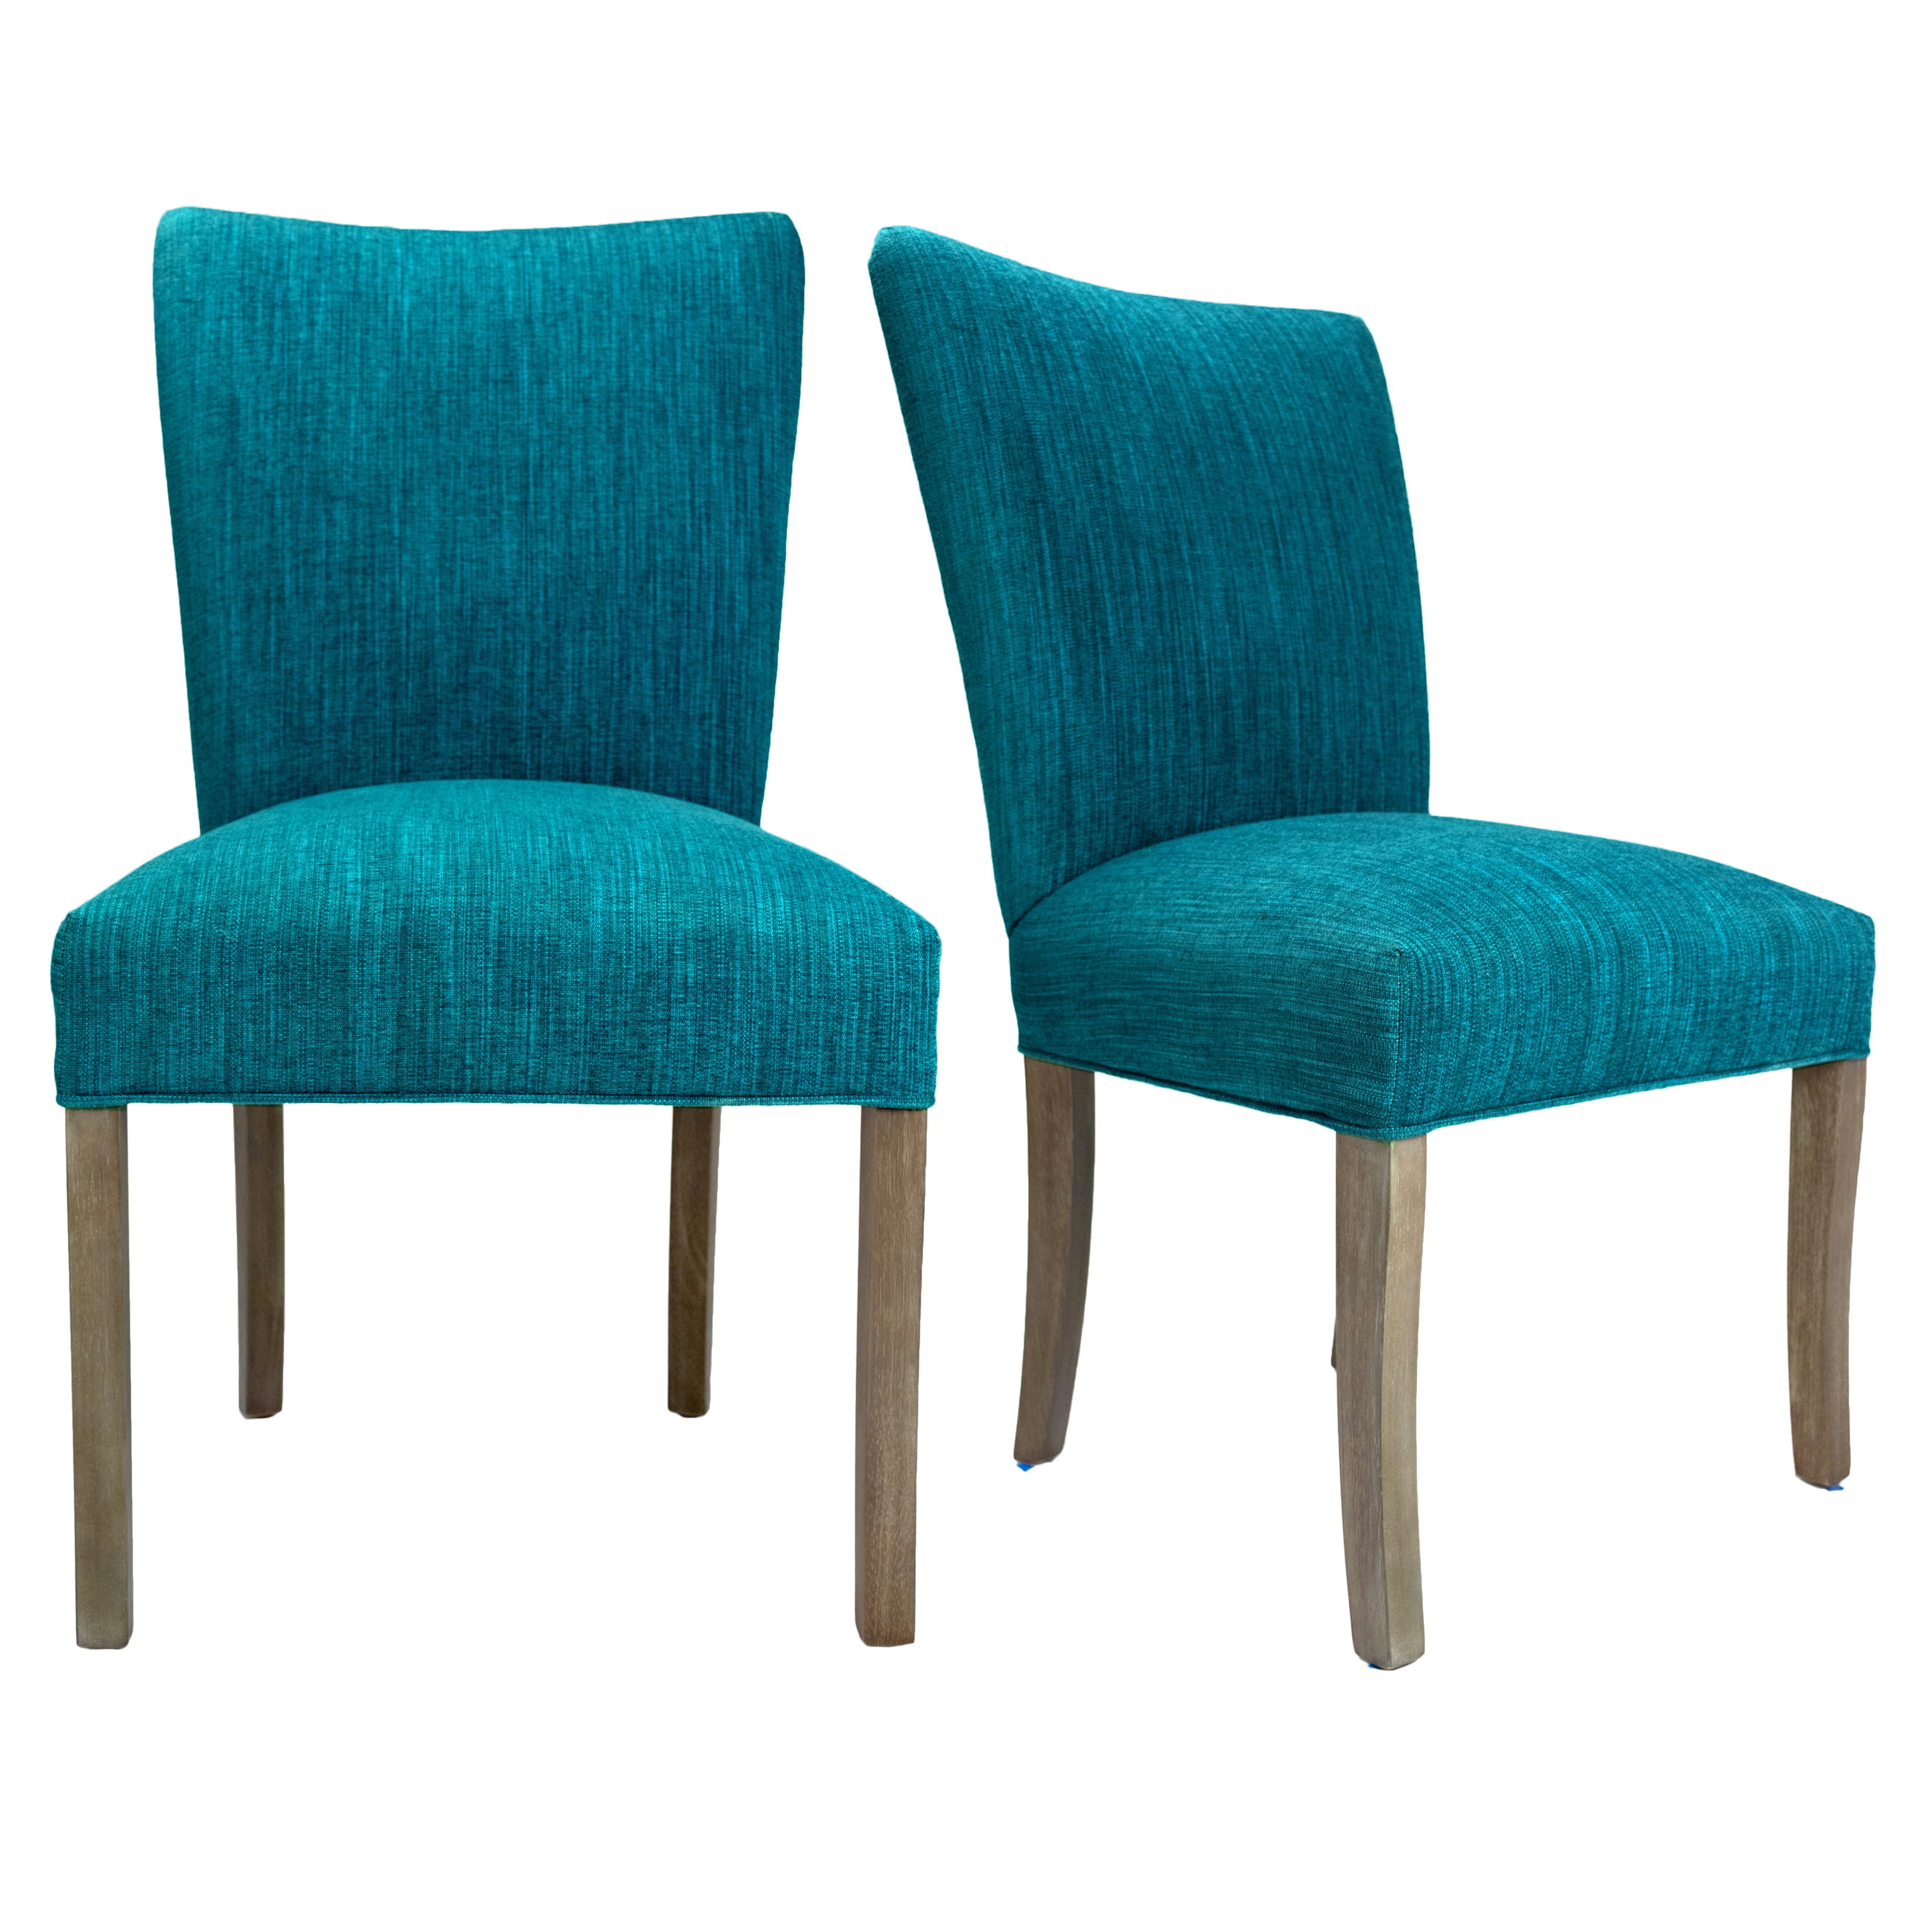 Shop julia lucky walnut legs upholstered dining chairs set of 2 on sale free shipping today overstock com 14694460